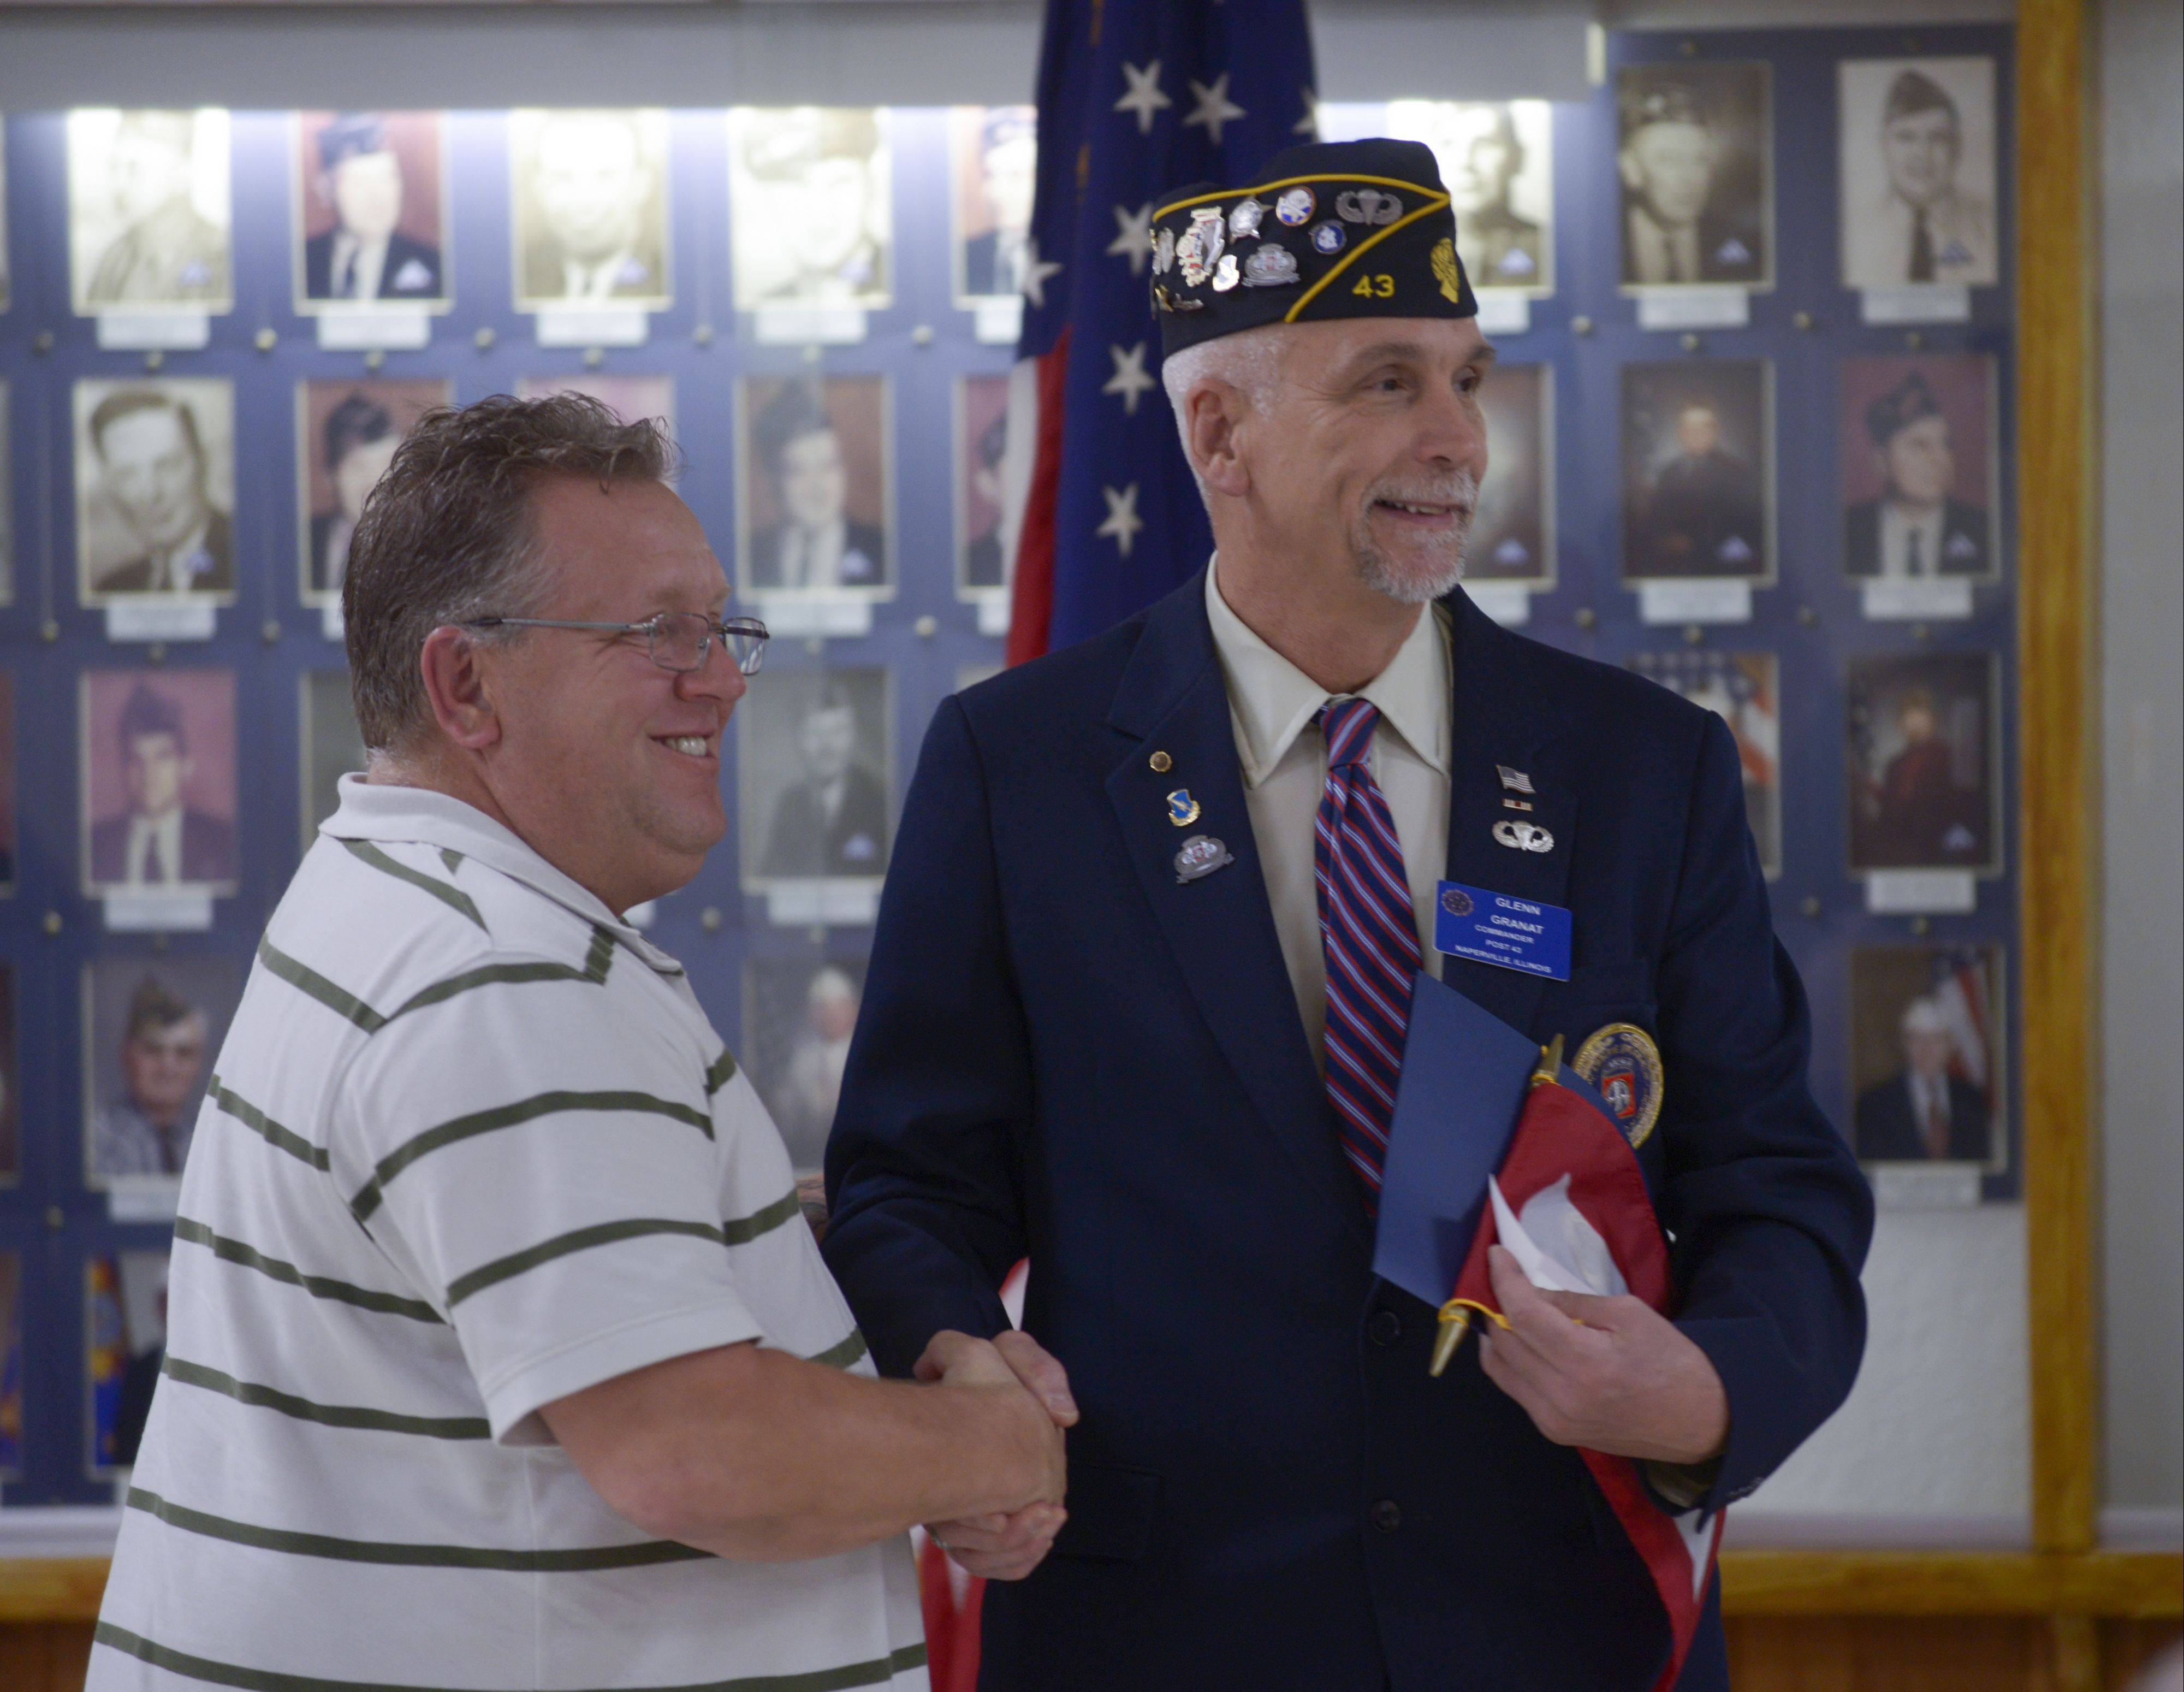 Greg Gennett of Medinah, whose son Greg is serving in the U.S. Marine Corps, receives a Blue Star Service Banner Sunday at VFW Post 3873 in Naperville from Glenn Granat of American Legion Post 43.